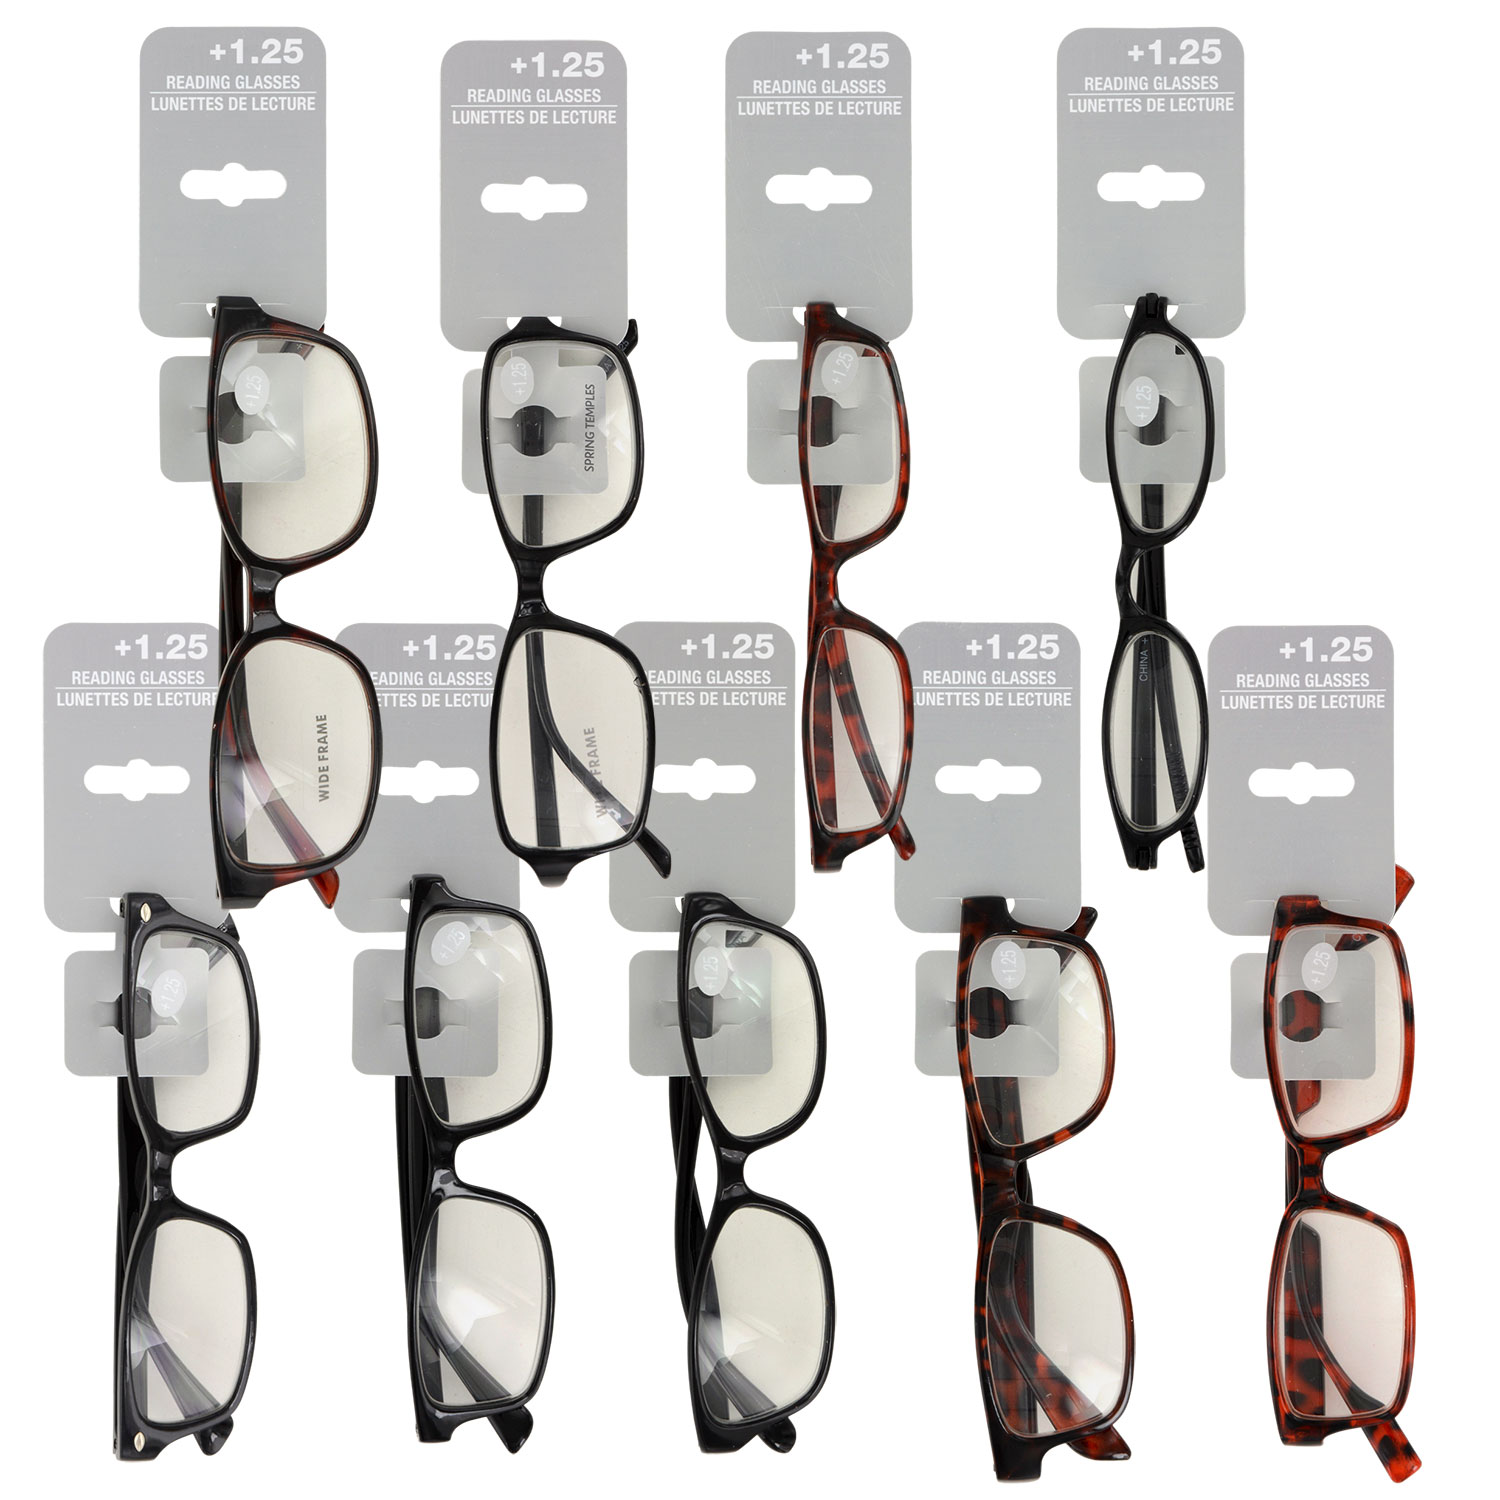 697436b15043 Fashion Reading Glasses with +1.25 Diopters